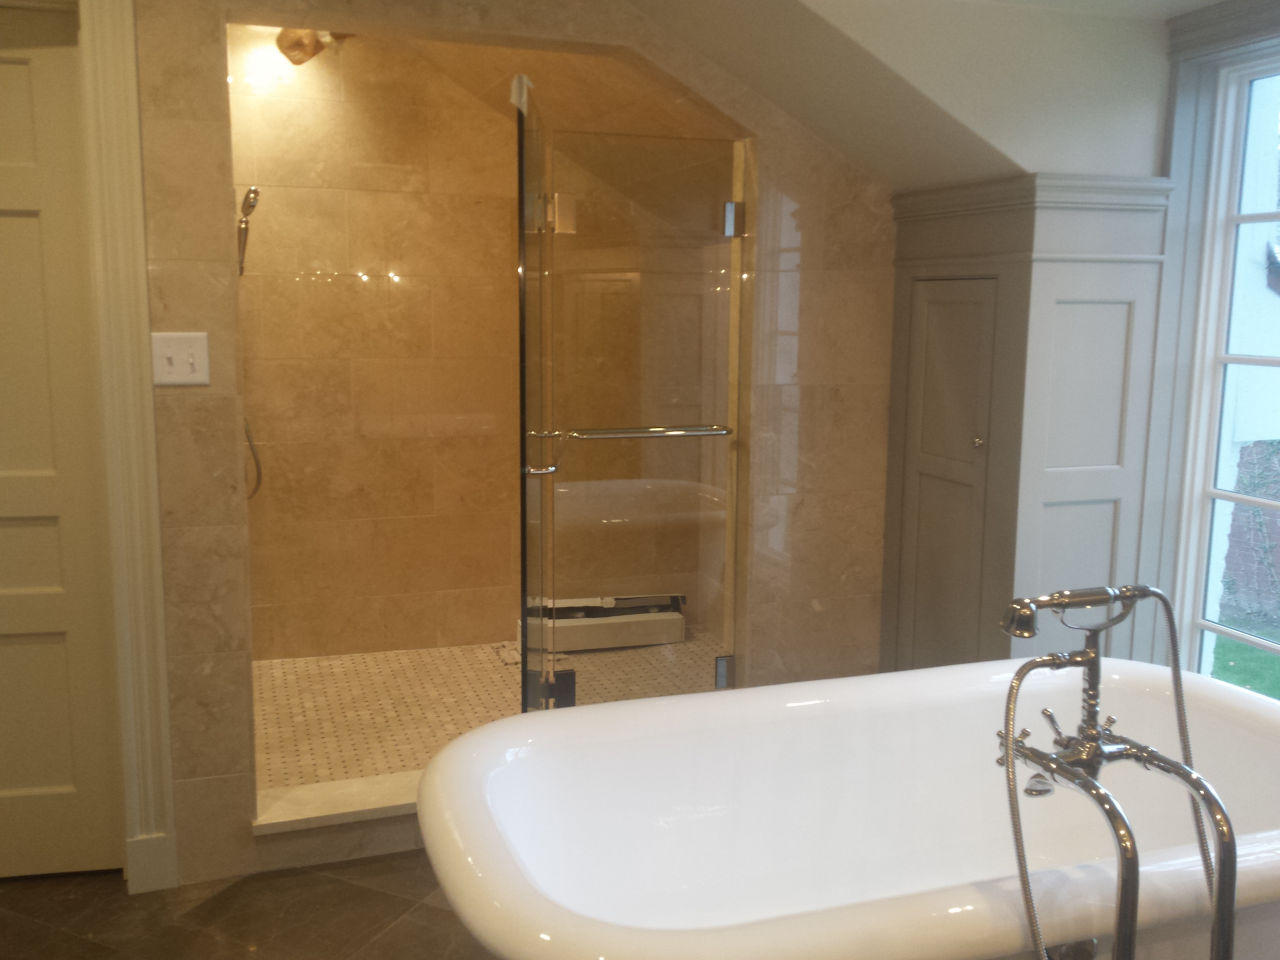 Bathroom Tile Tub & Shower Repairs | Pittsburgh & East Ohio low as $250